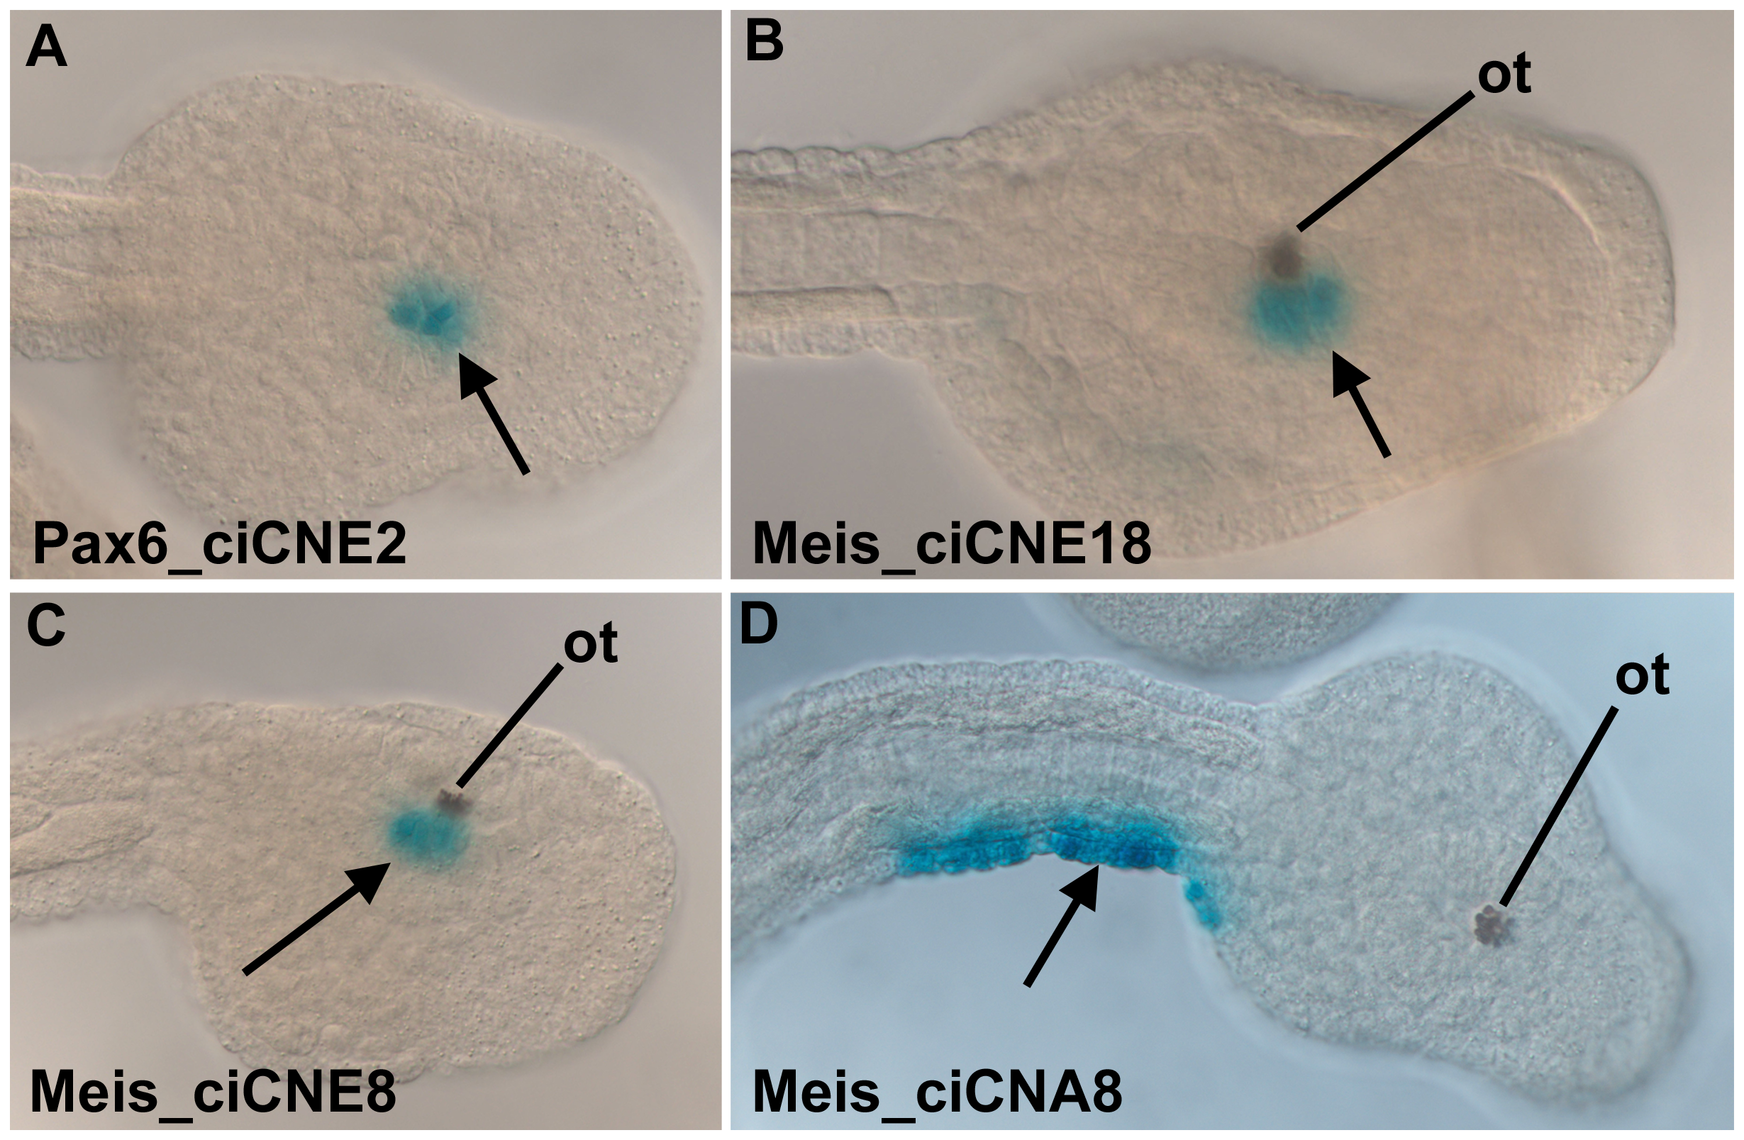 Analysis of ciCNEs in <i>C. intestinalis</i> embryos.